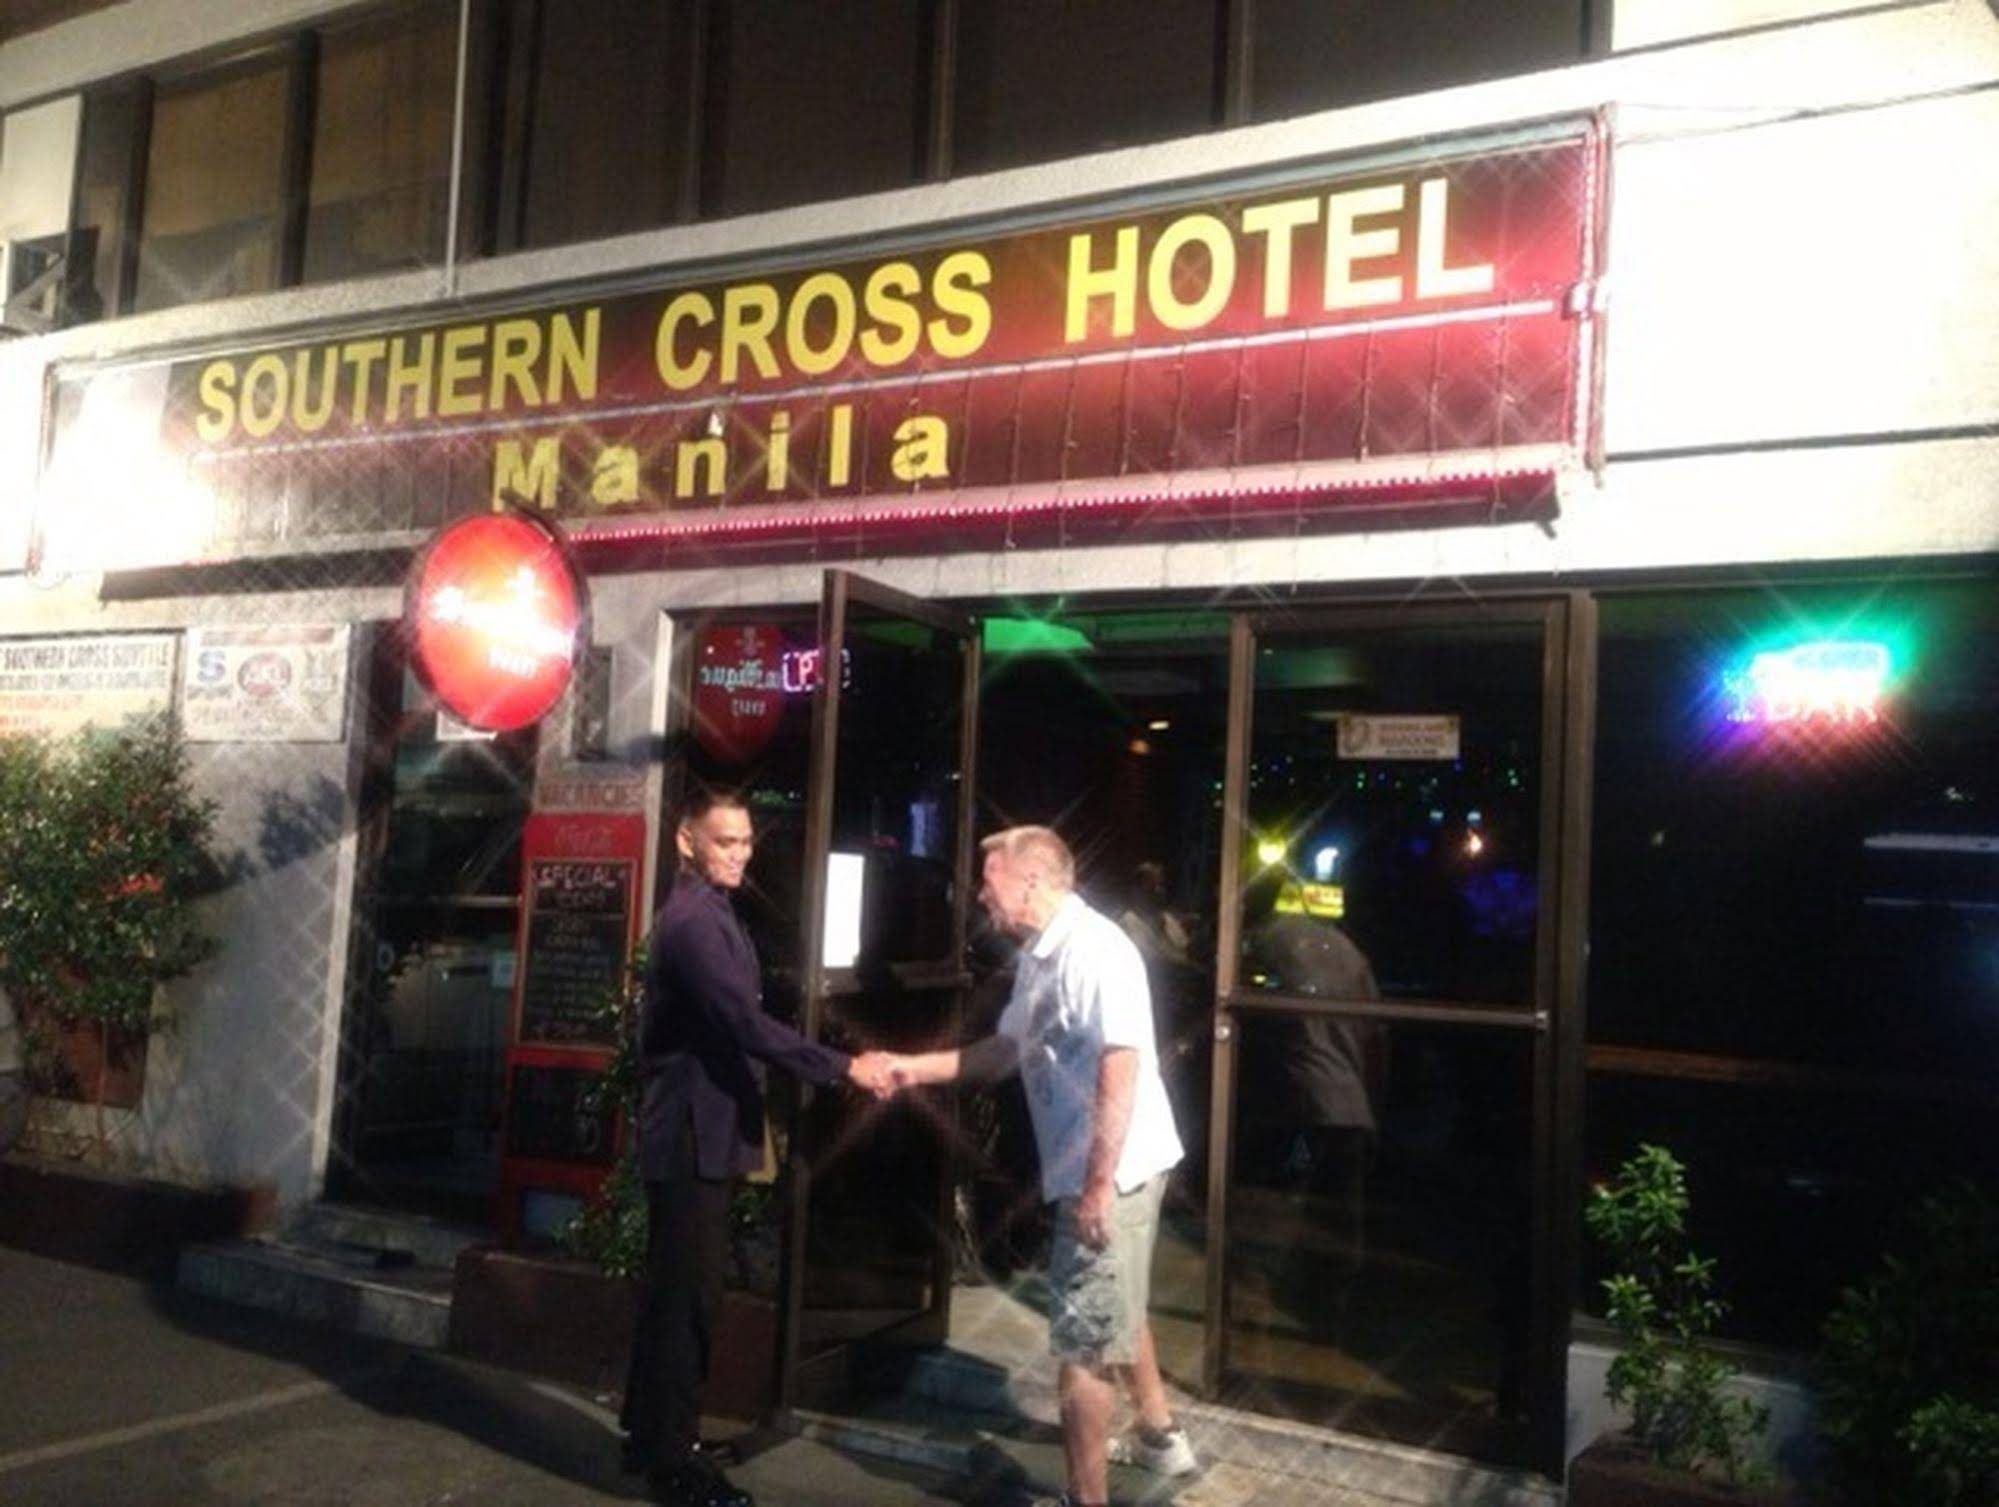 The Southern Cross Hotel Manila